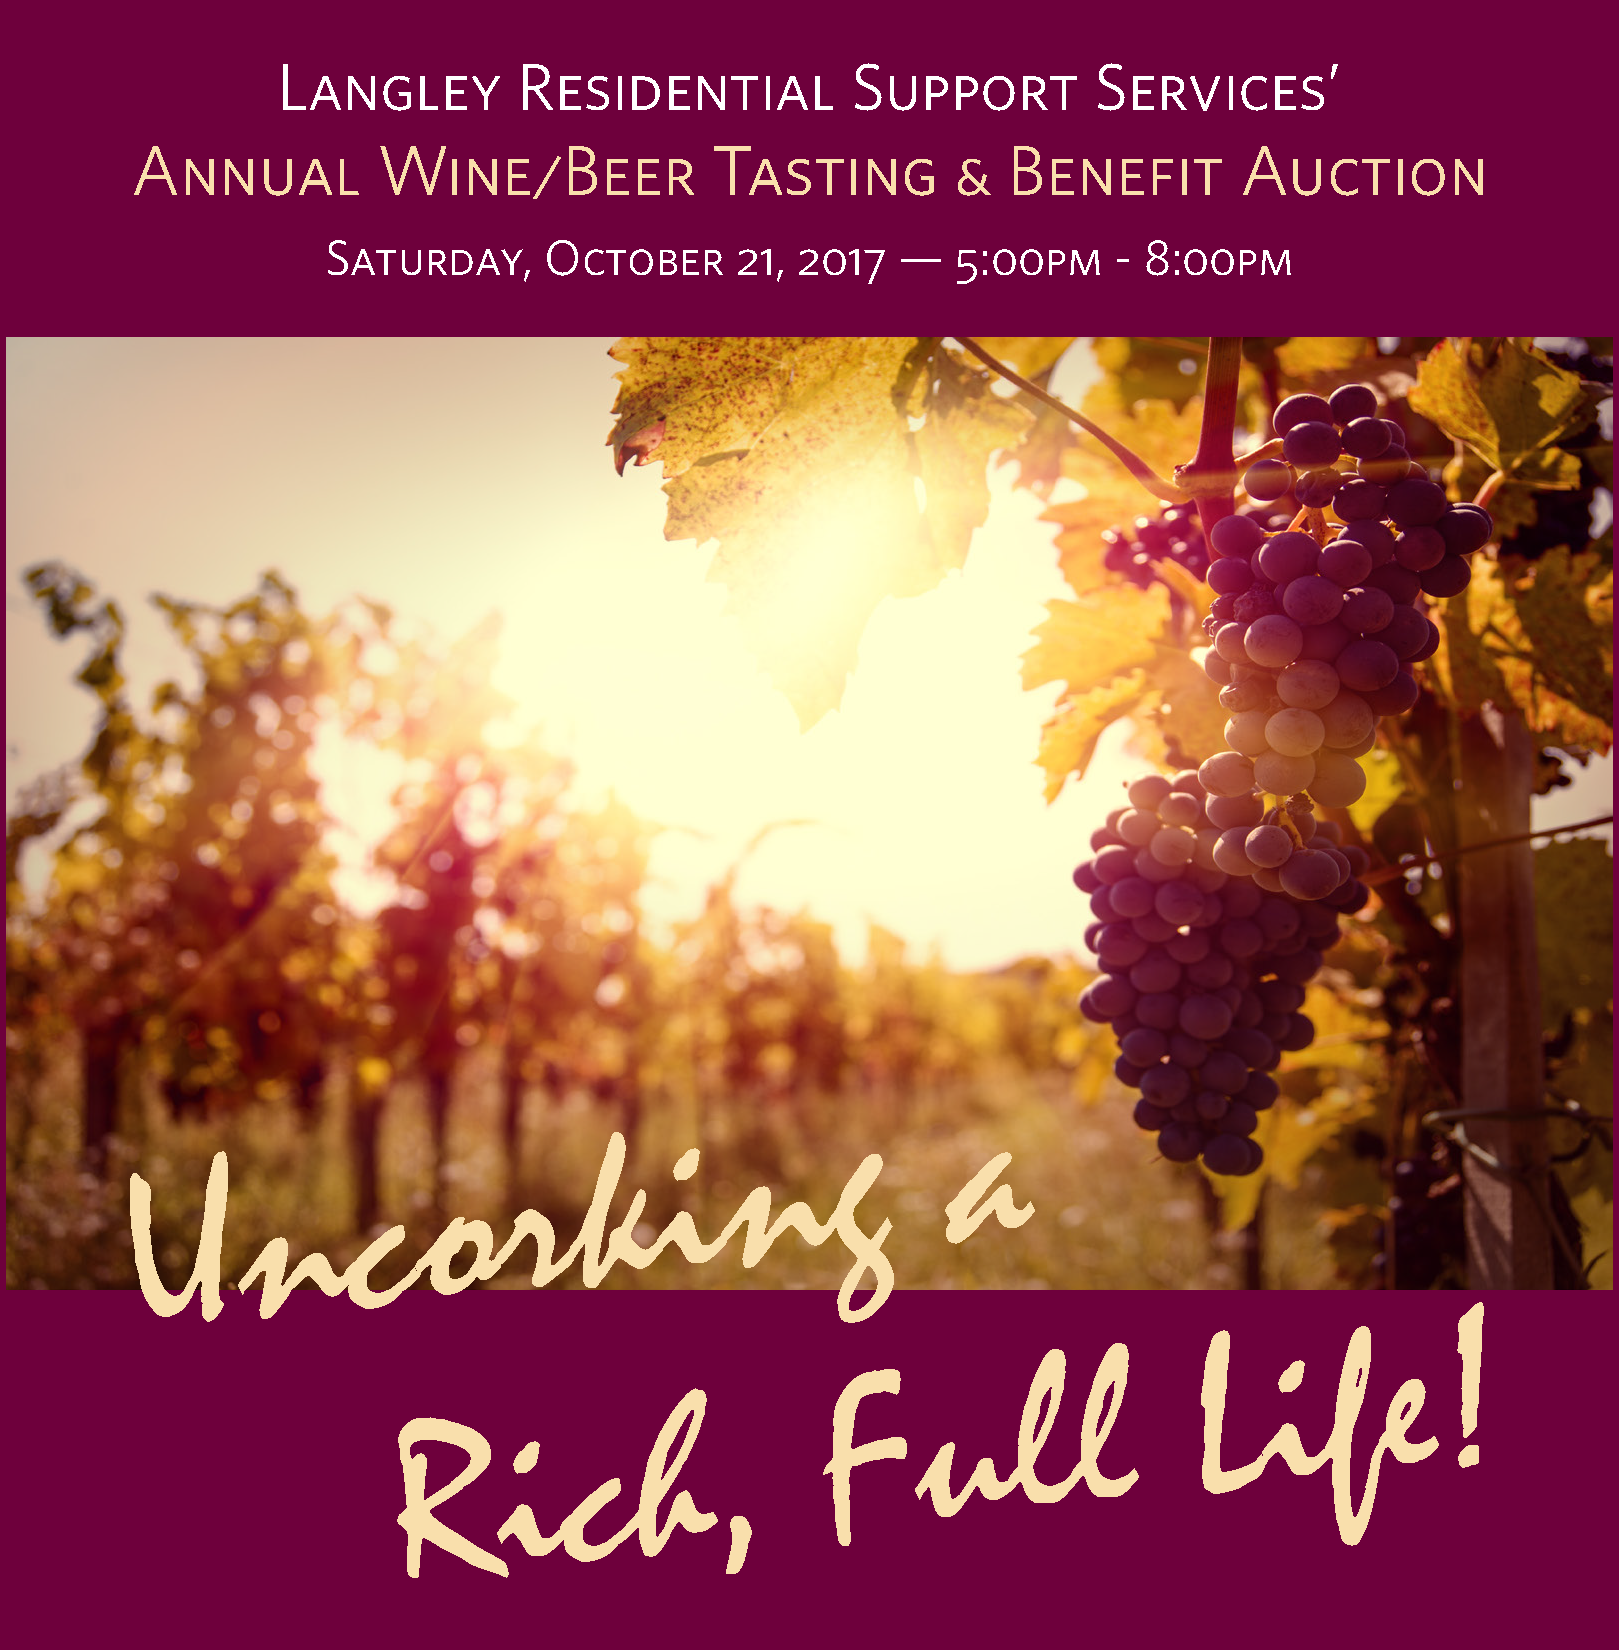 Annual Fall Wine/Beer Tasting & Benefit Auction